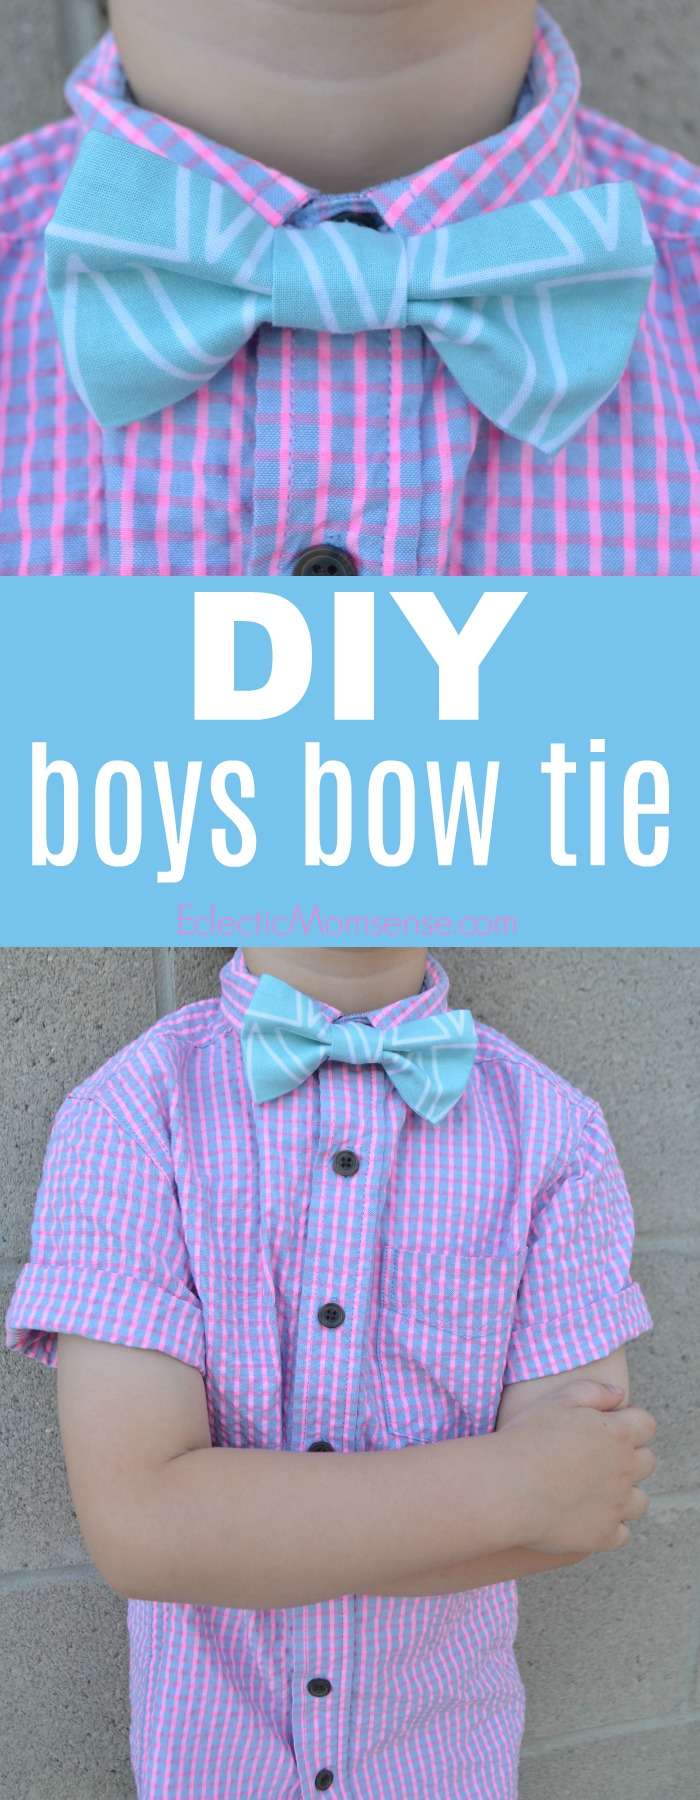 DIY Boys Bow Tie | Craft up custom bow ties with Simplicity patterns and Cricut Maker.